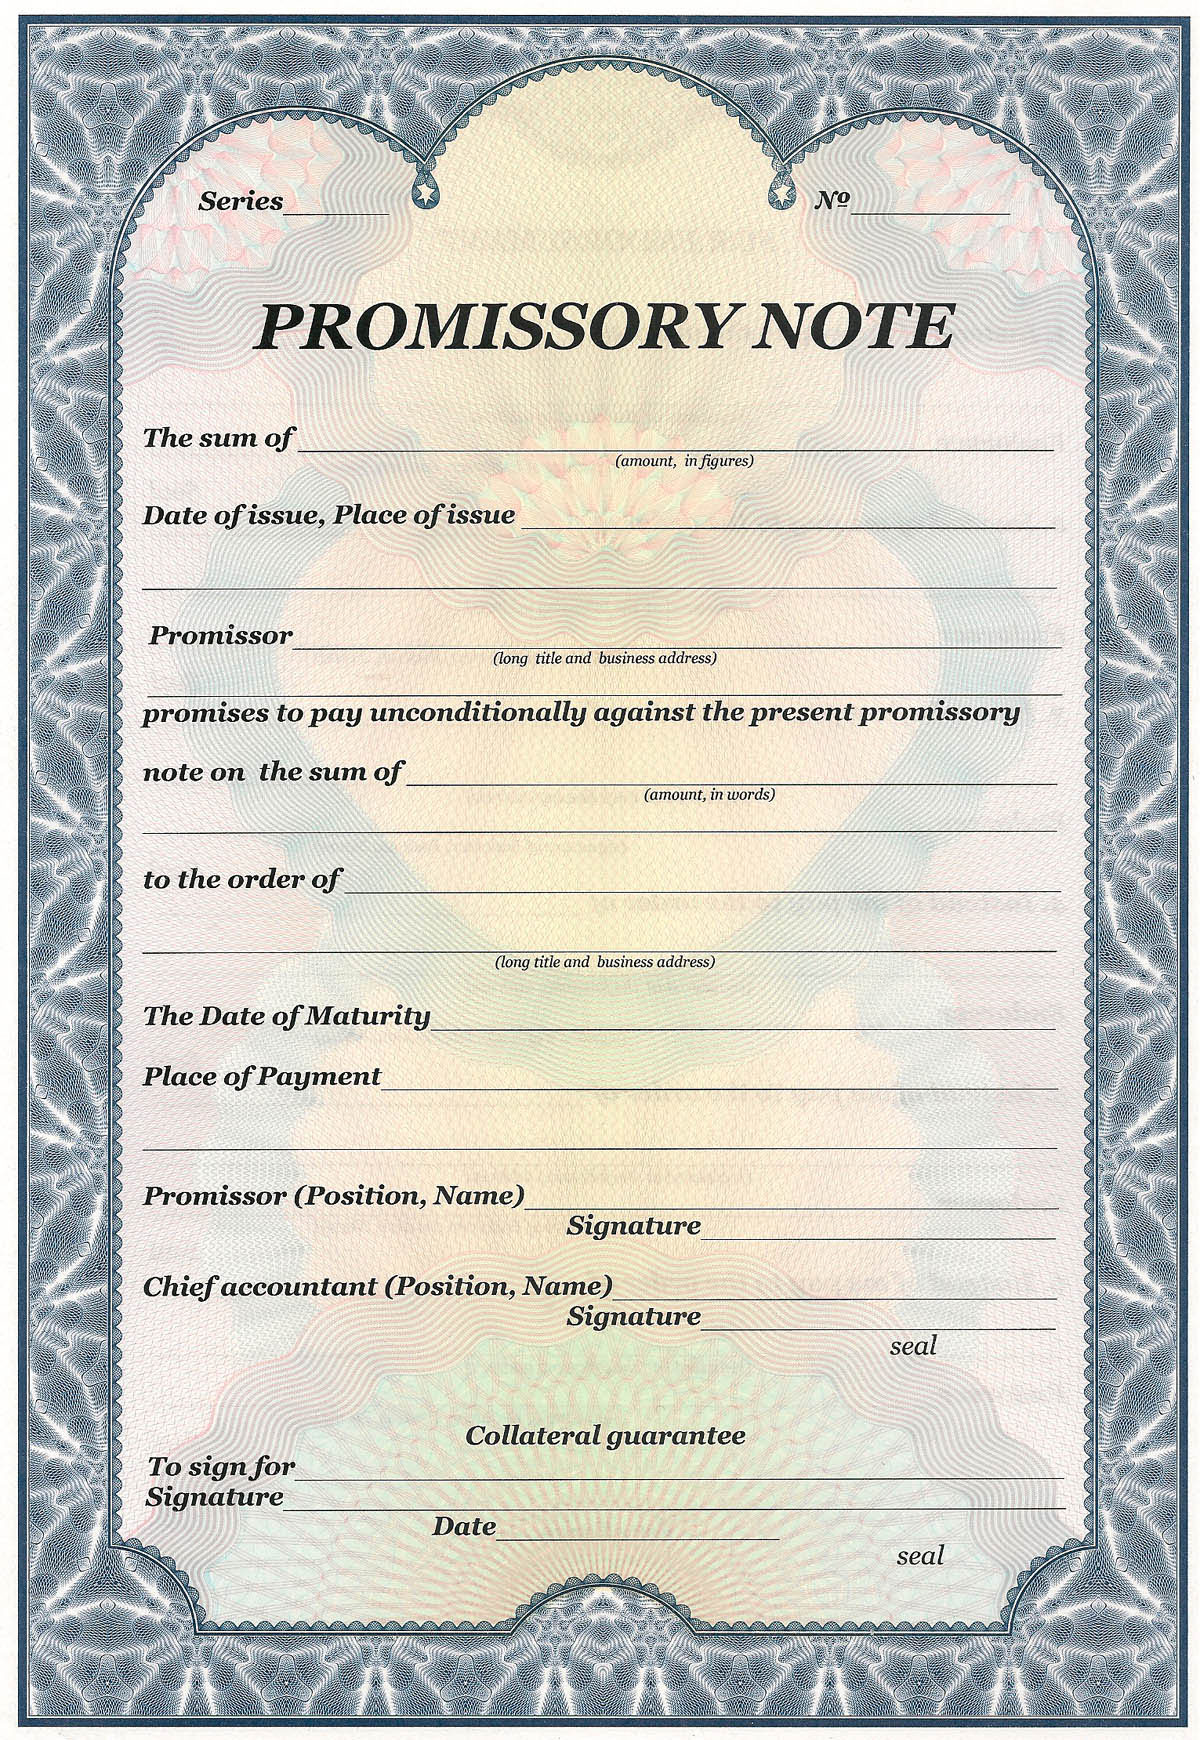 promissory note Protect yourself when lending money with a promissory note print and download your personalized contract for free quick and simple.